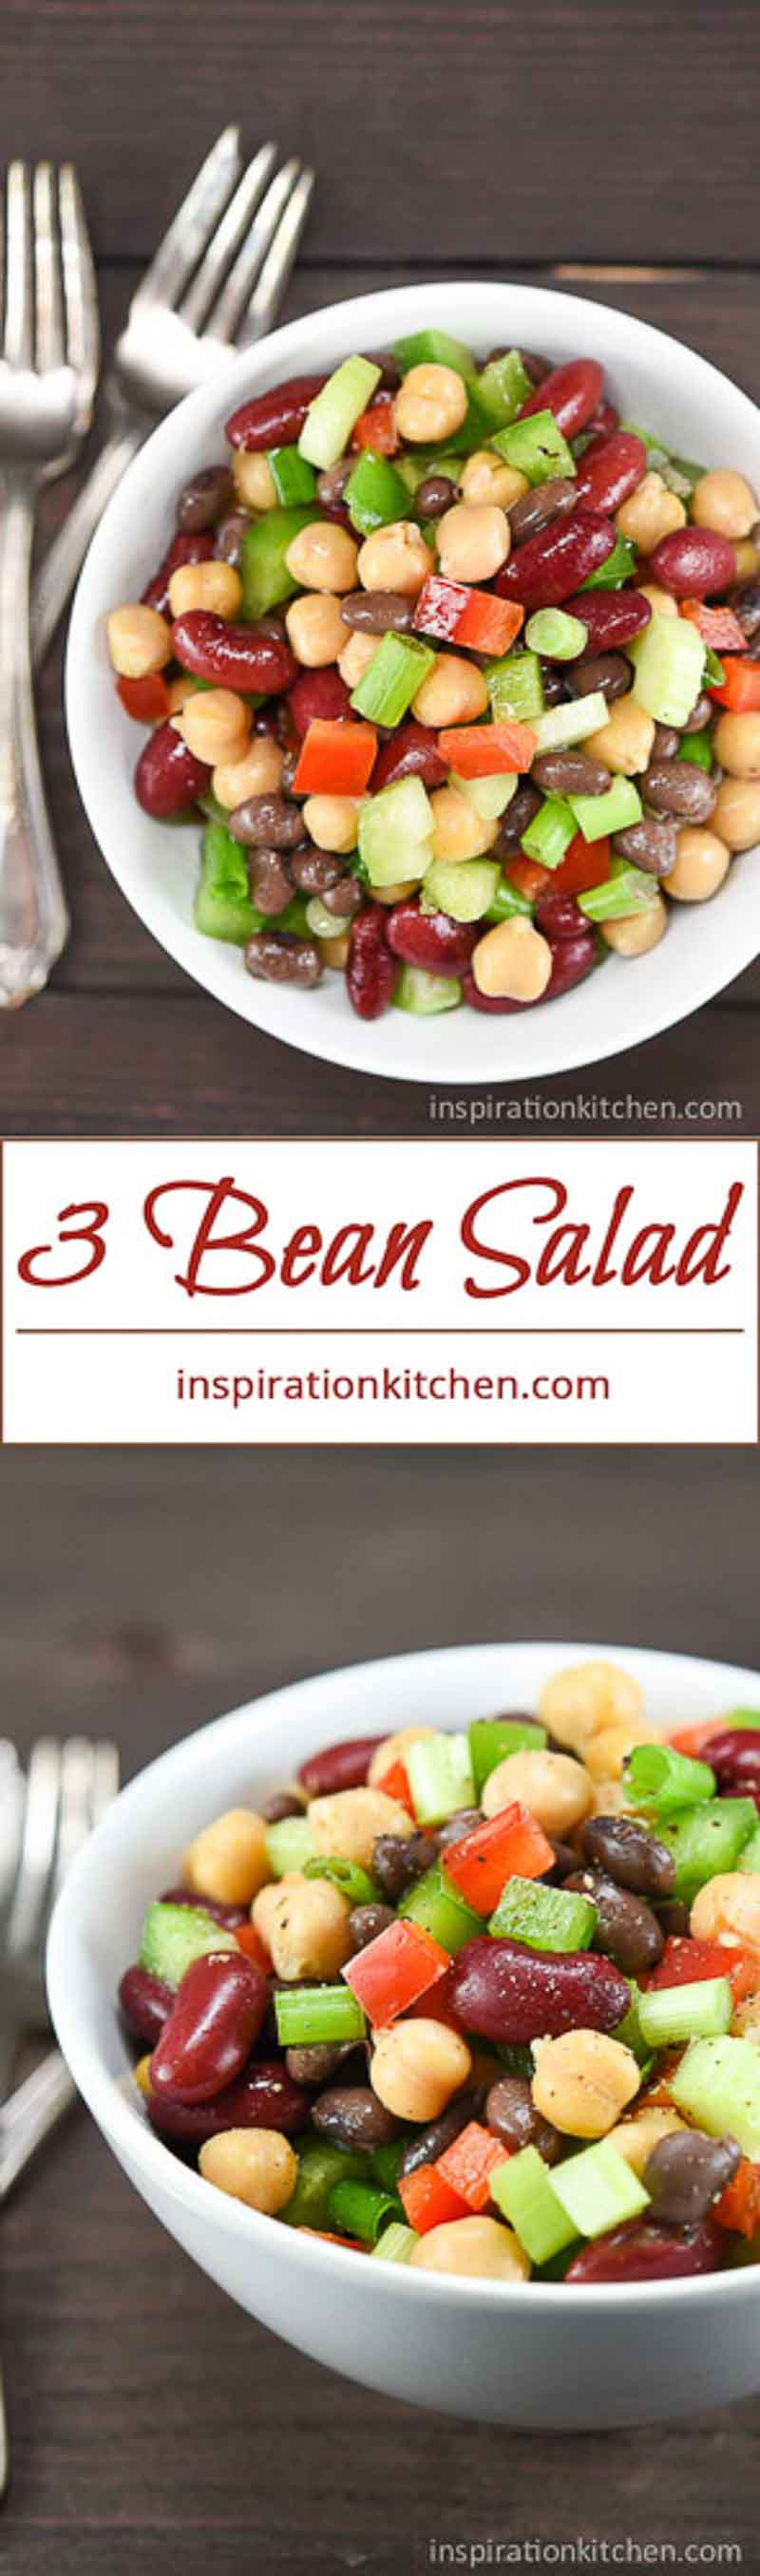 3 Bean Salad Collage | Inspiration Kitchen